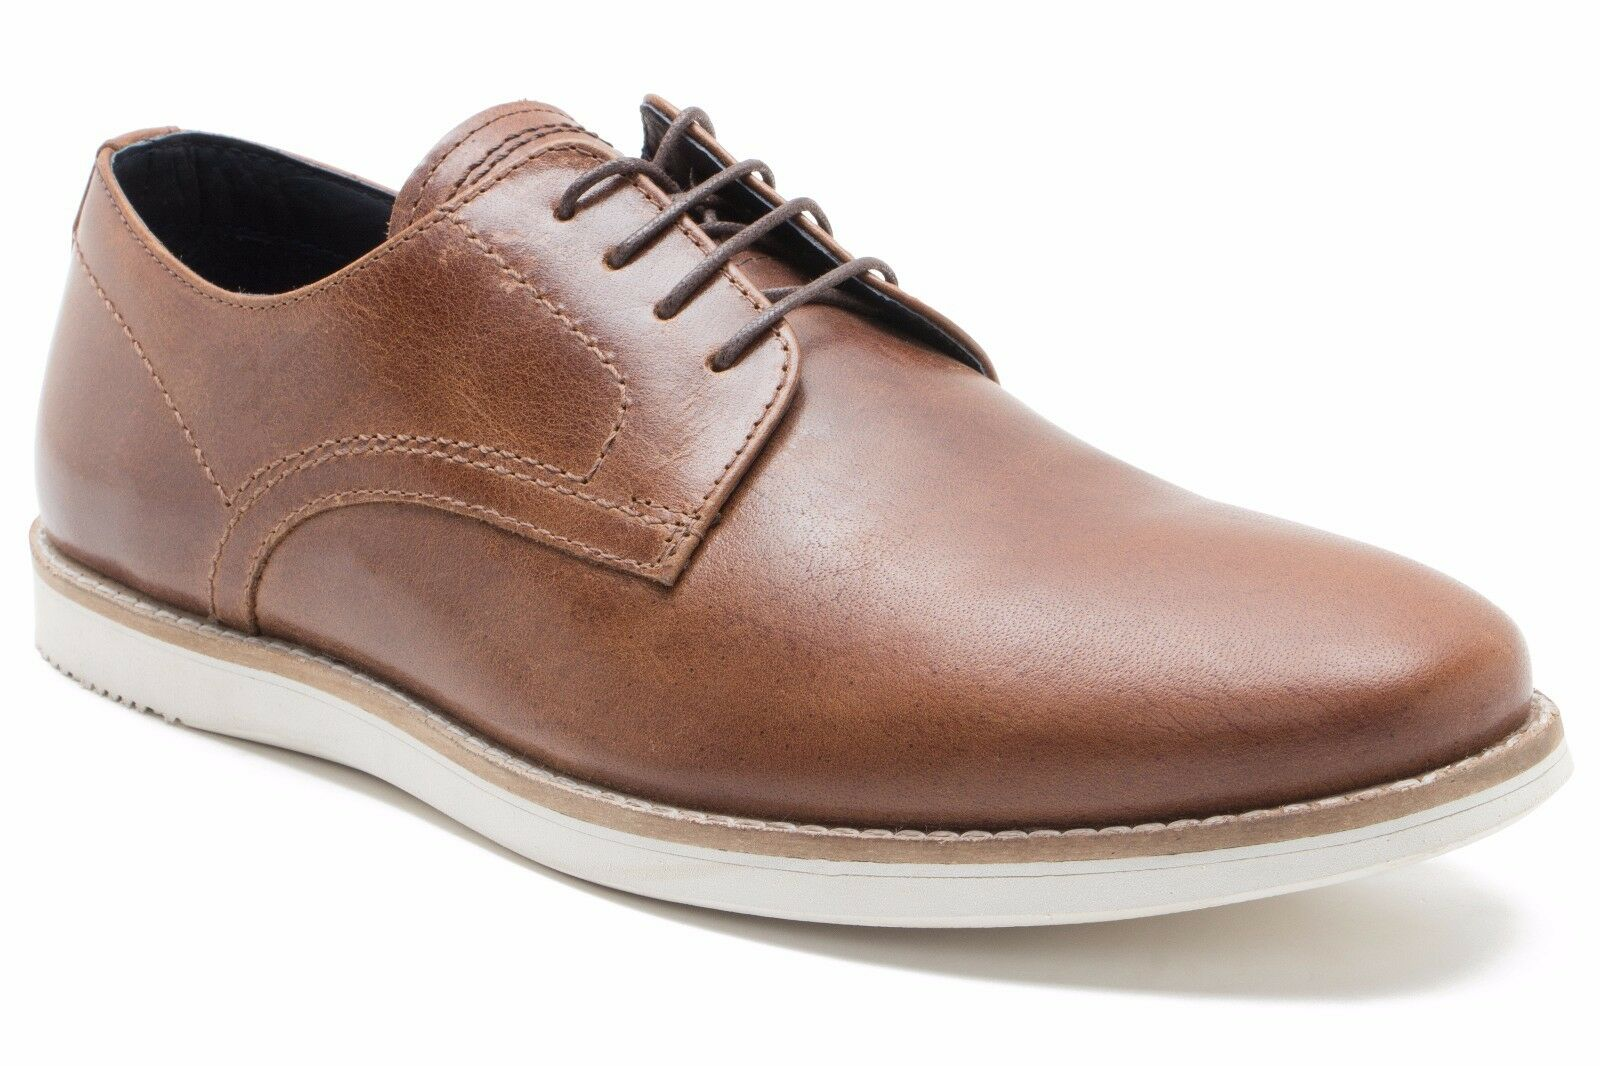 Red Tape Men's Tatton Tan Casual shoes